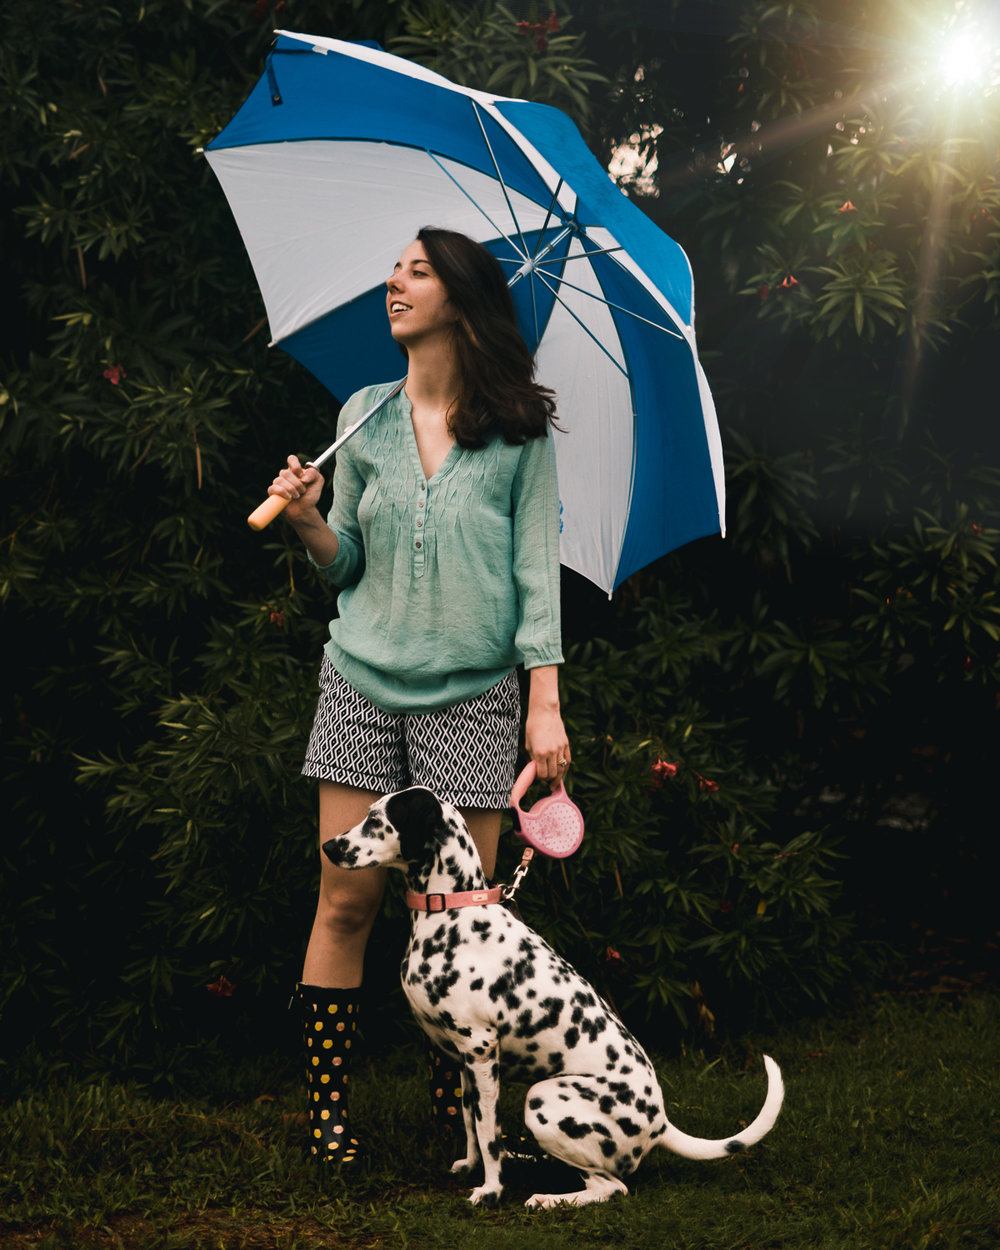 Red head with umbrella and dalmatian